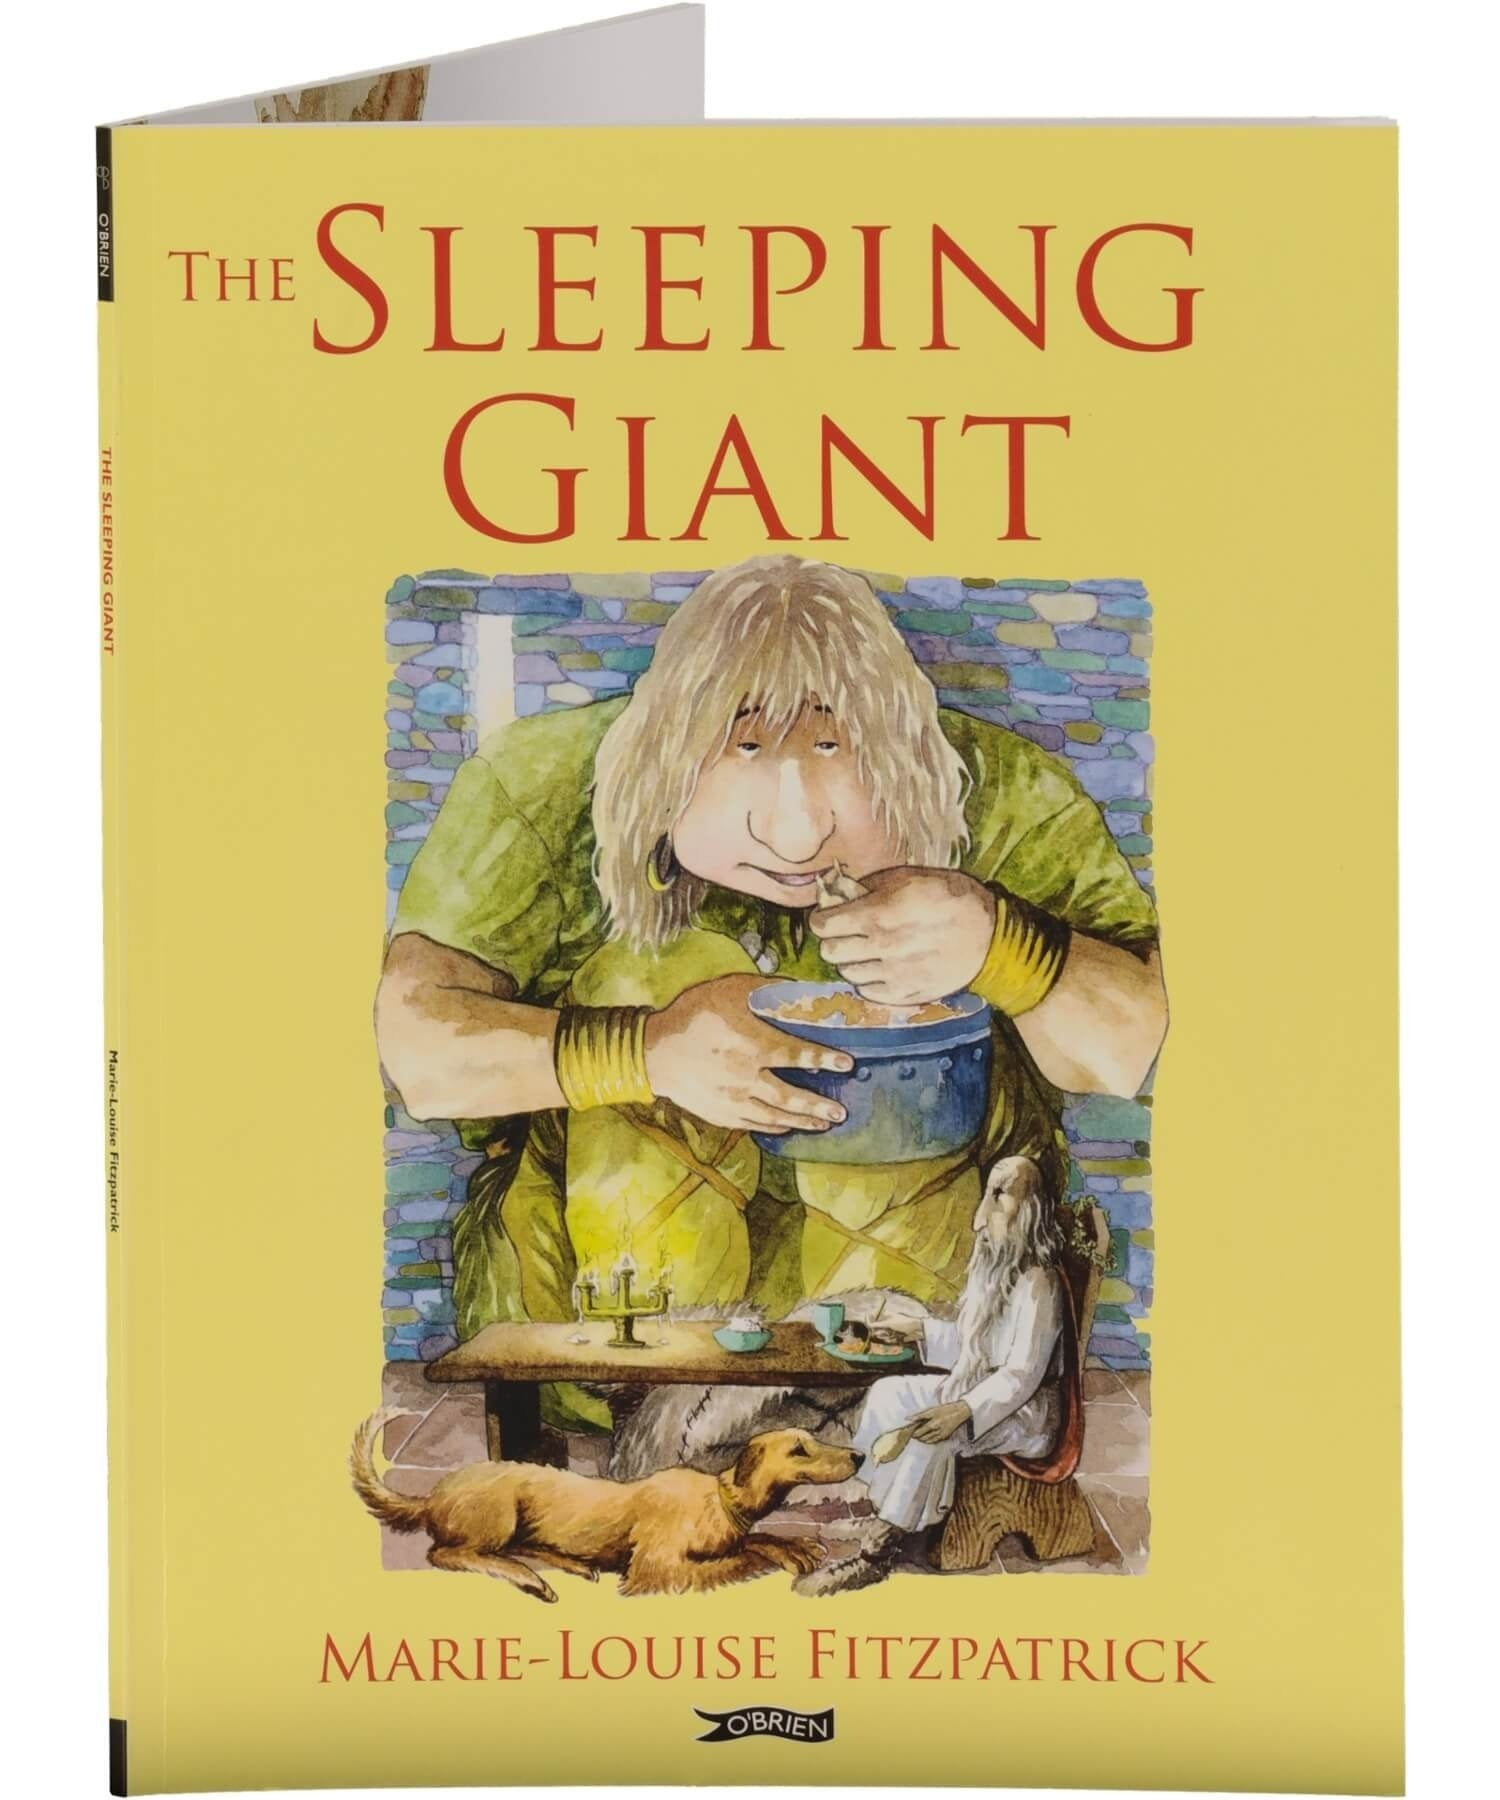 The Sleeping Giant - [The O'Brien Press] - Books & Stationery - Irish Gifts